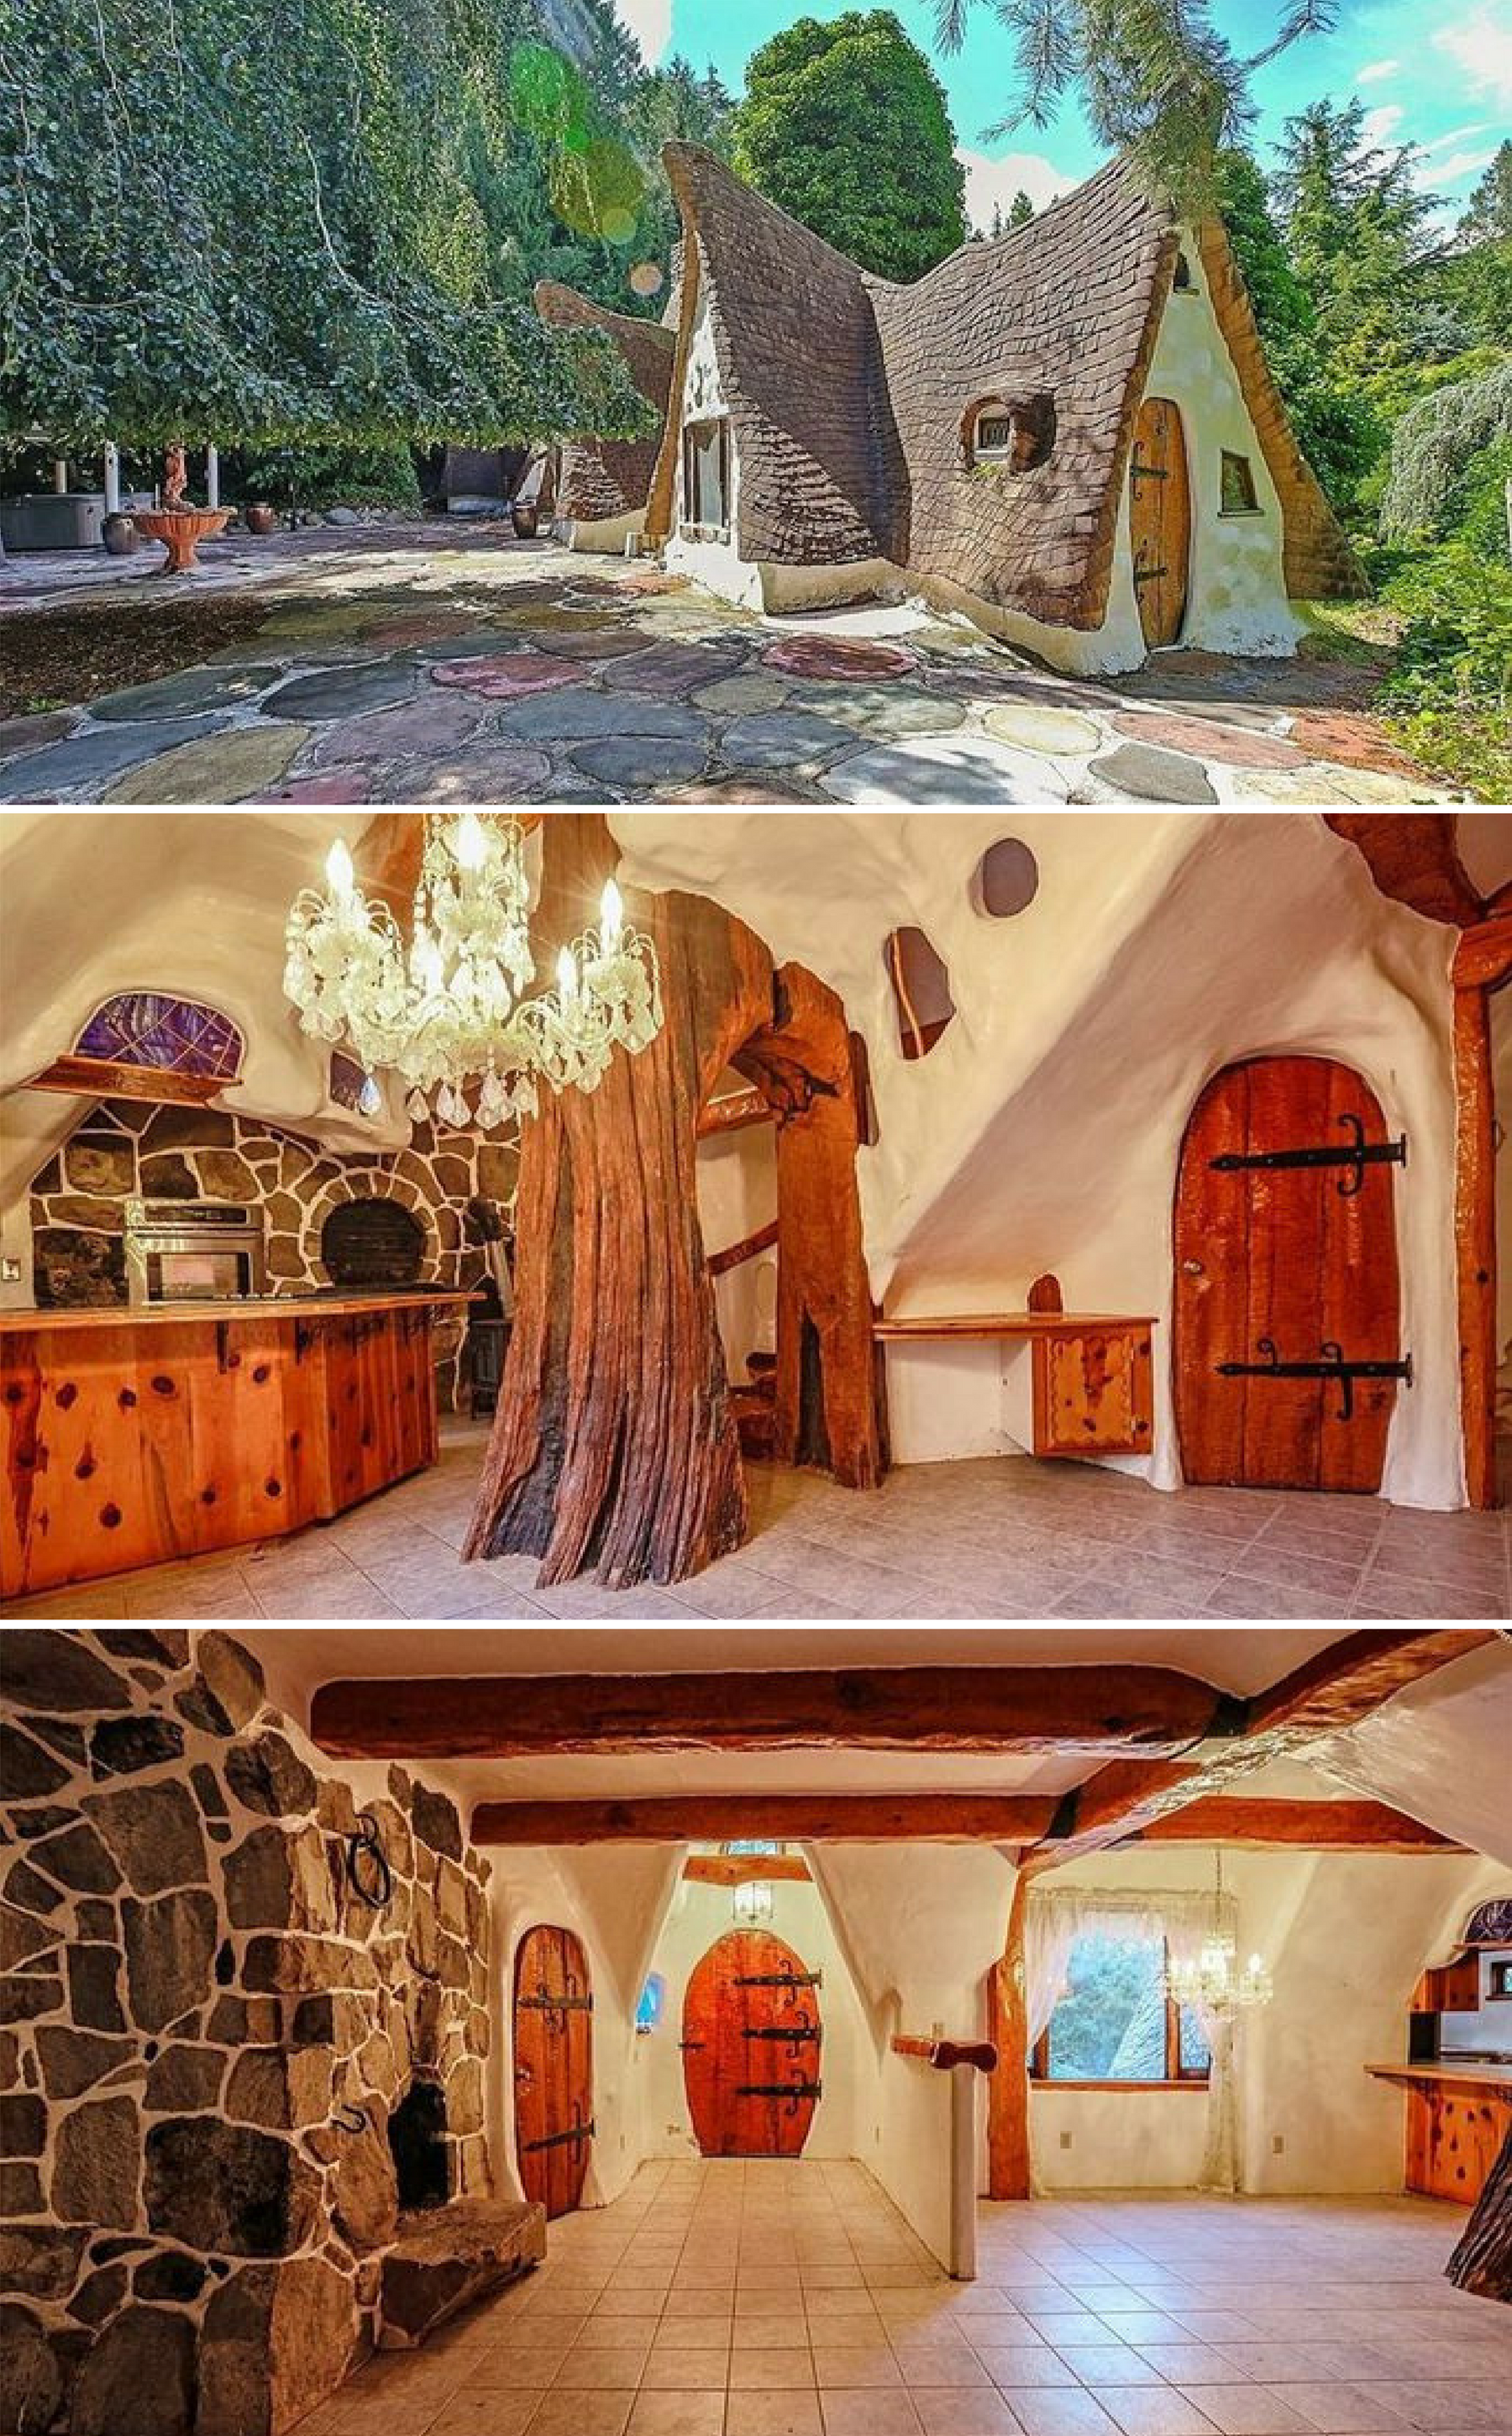 A Fairy Tale Cottage With Tree Inside